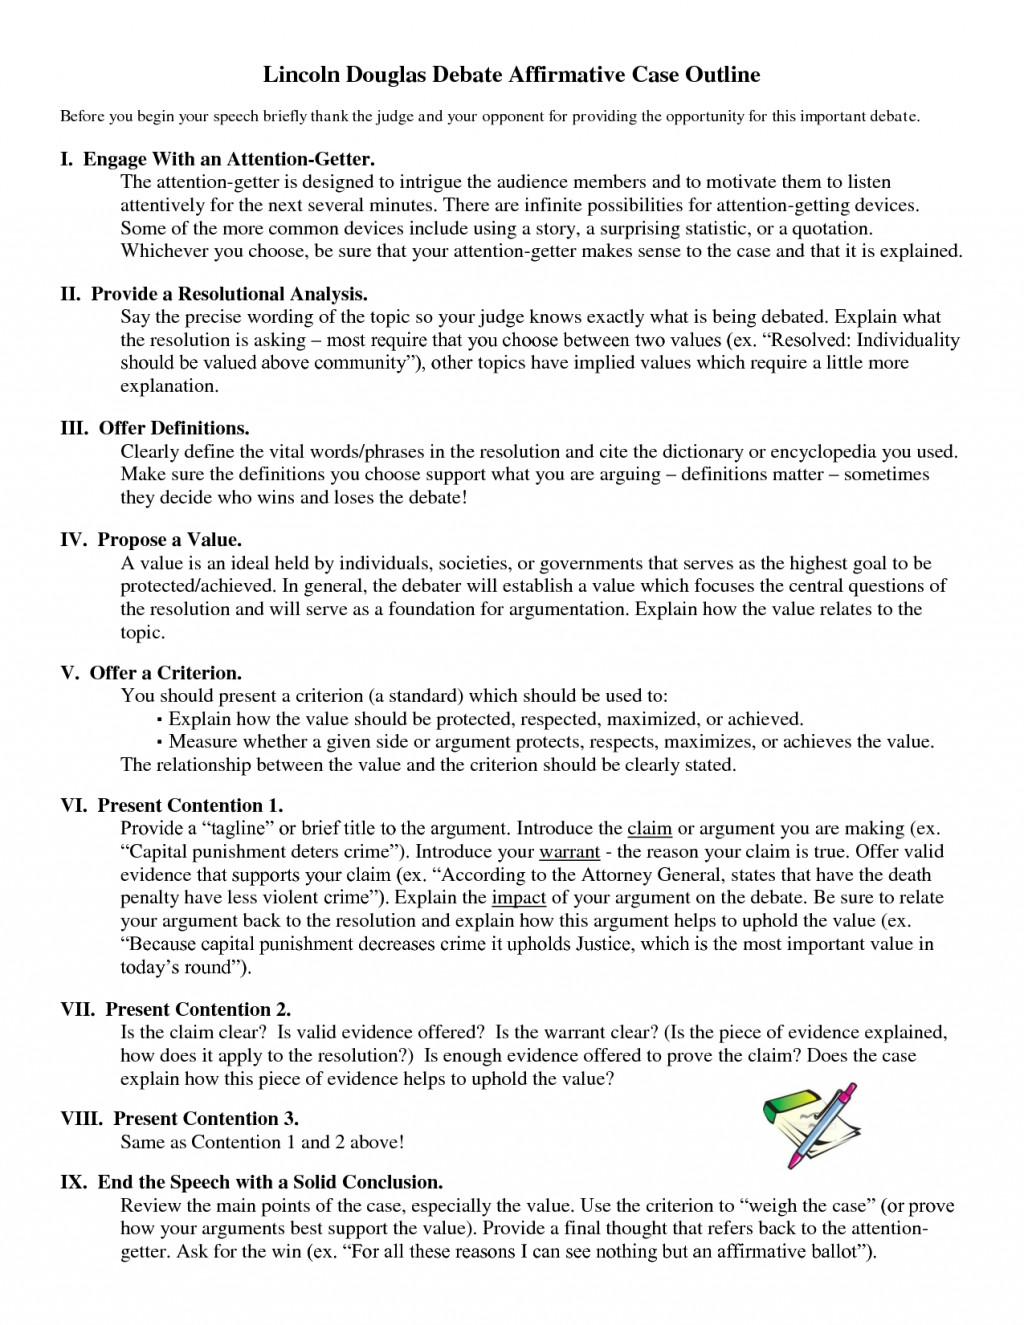 013 Essay Example Lincoln Douglas Affirmative Outline Argumentative On Death Unbelievable Penalty Ideas Persuasive About In The Philippines Pro Large